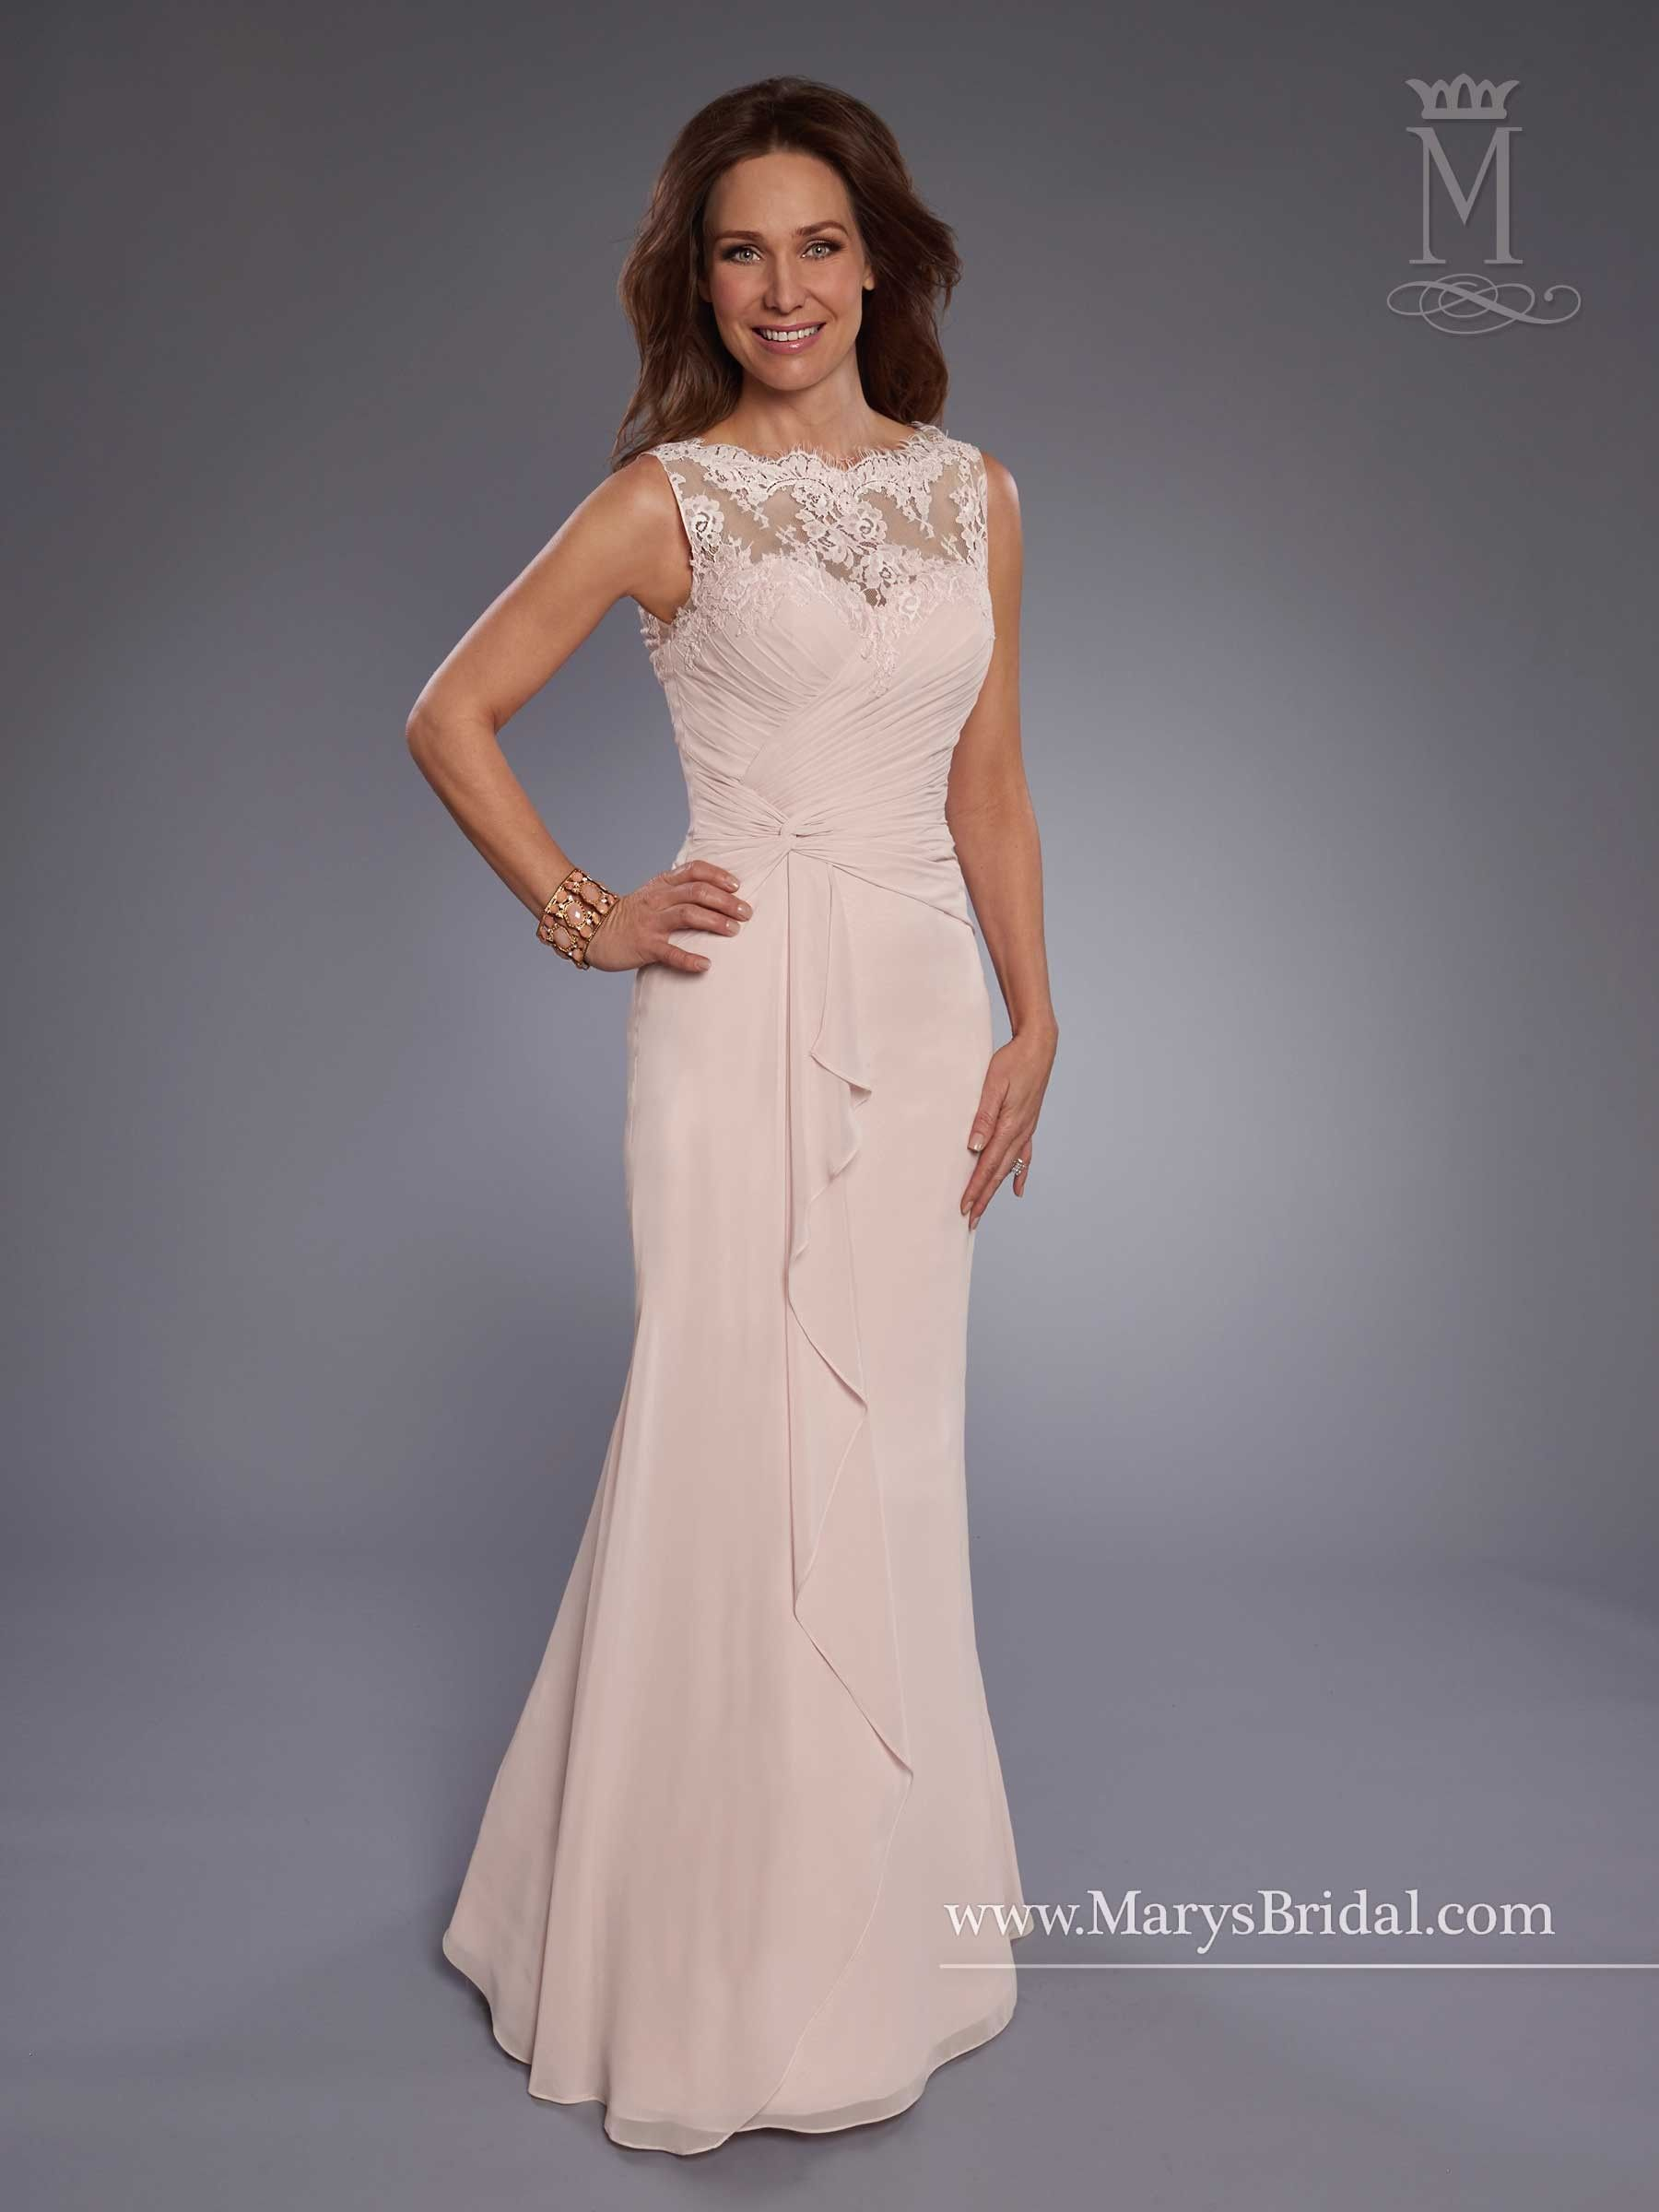 Mother wear for wedding  Marys Bridal M Sleeveless Mother of the Bride Gown  My Style